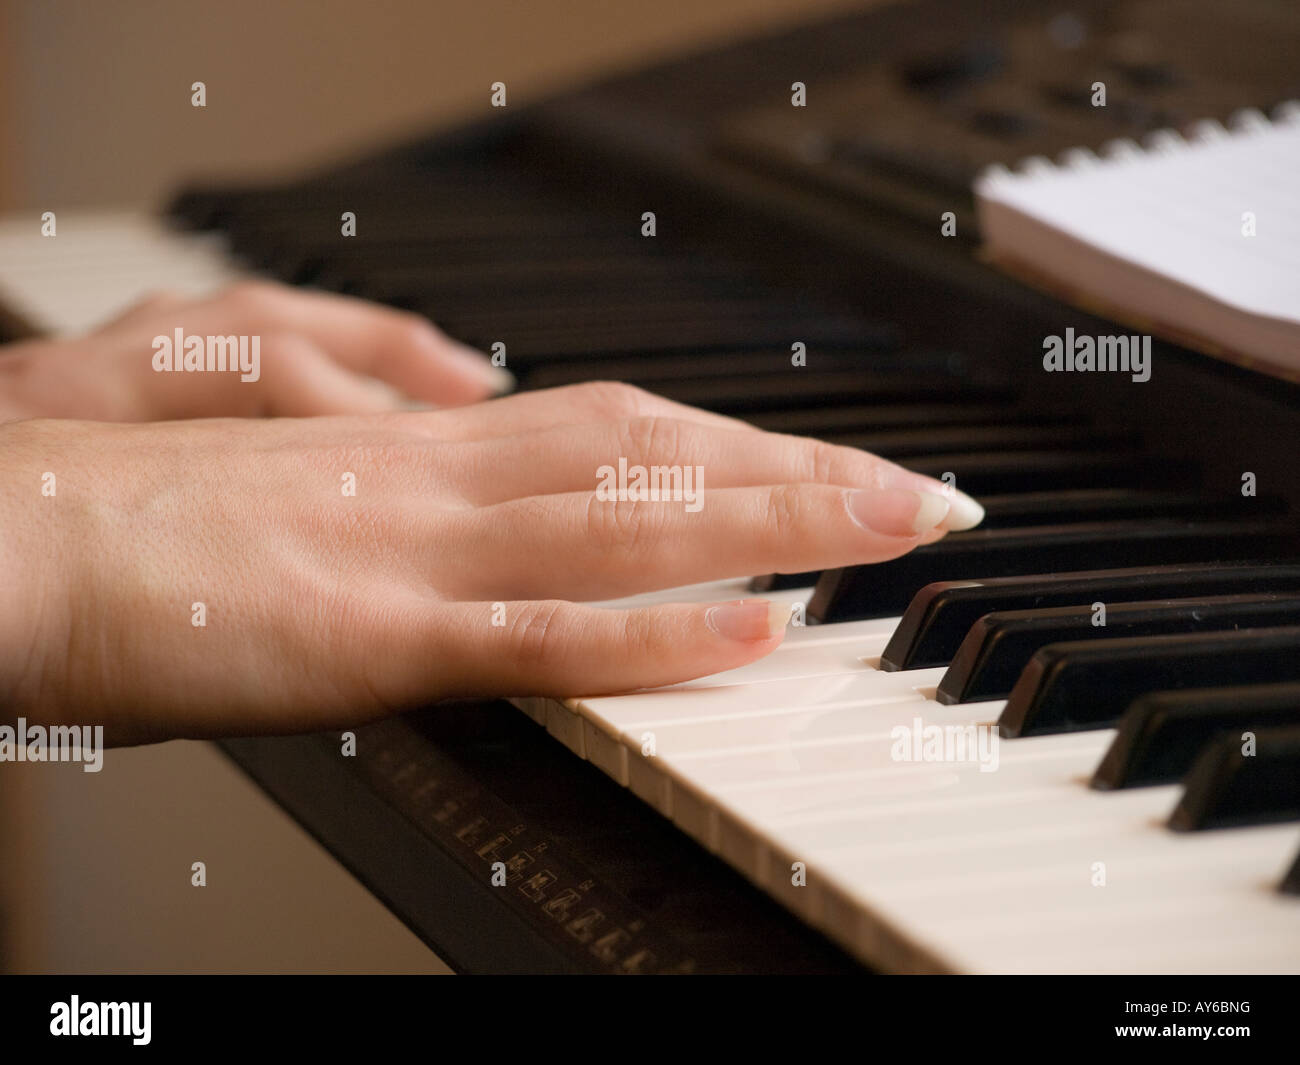 Pianist's hands playing synthesiser - Stock Image